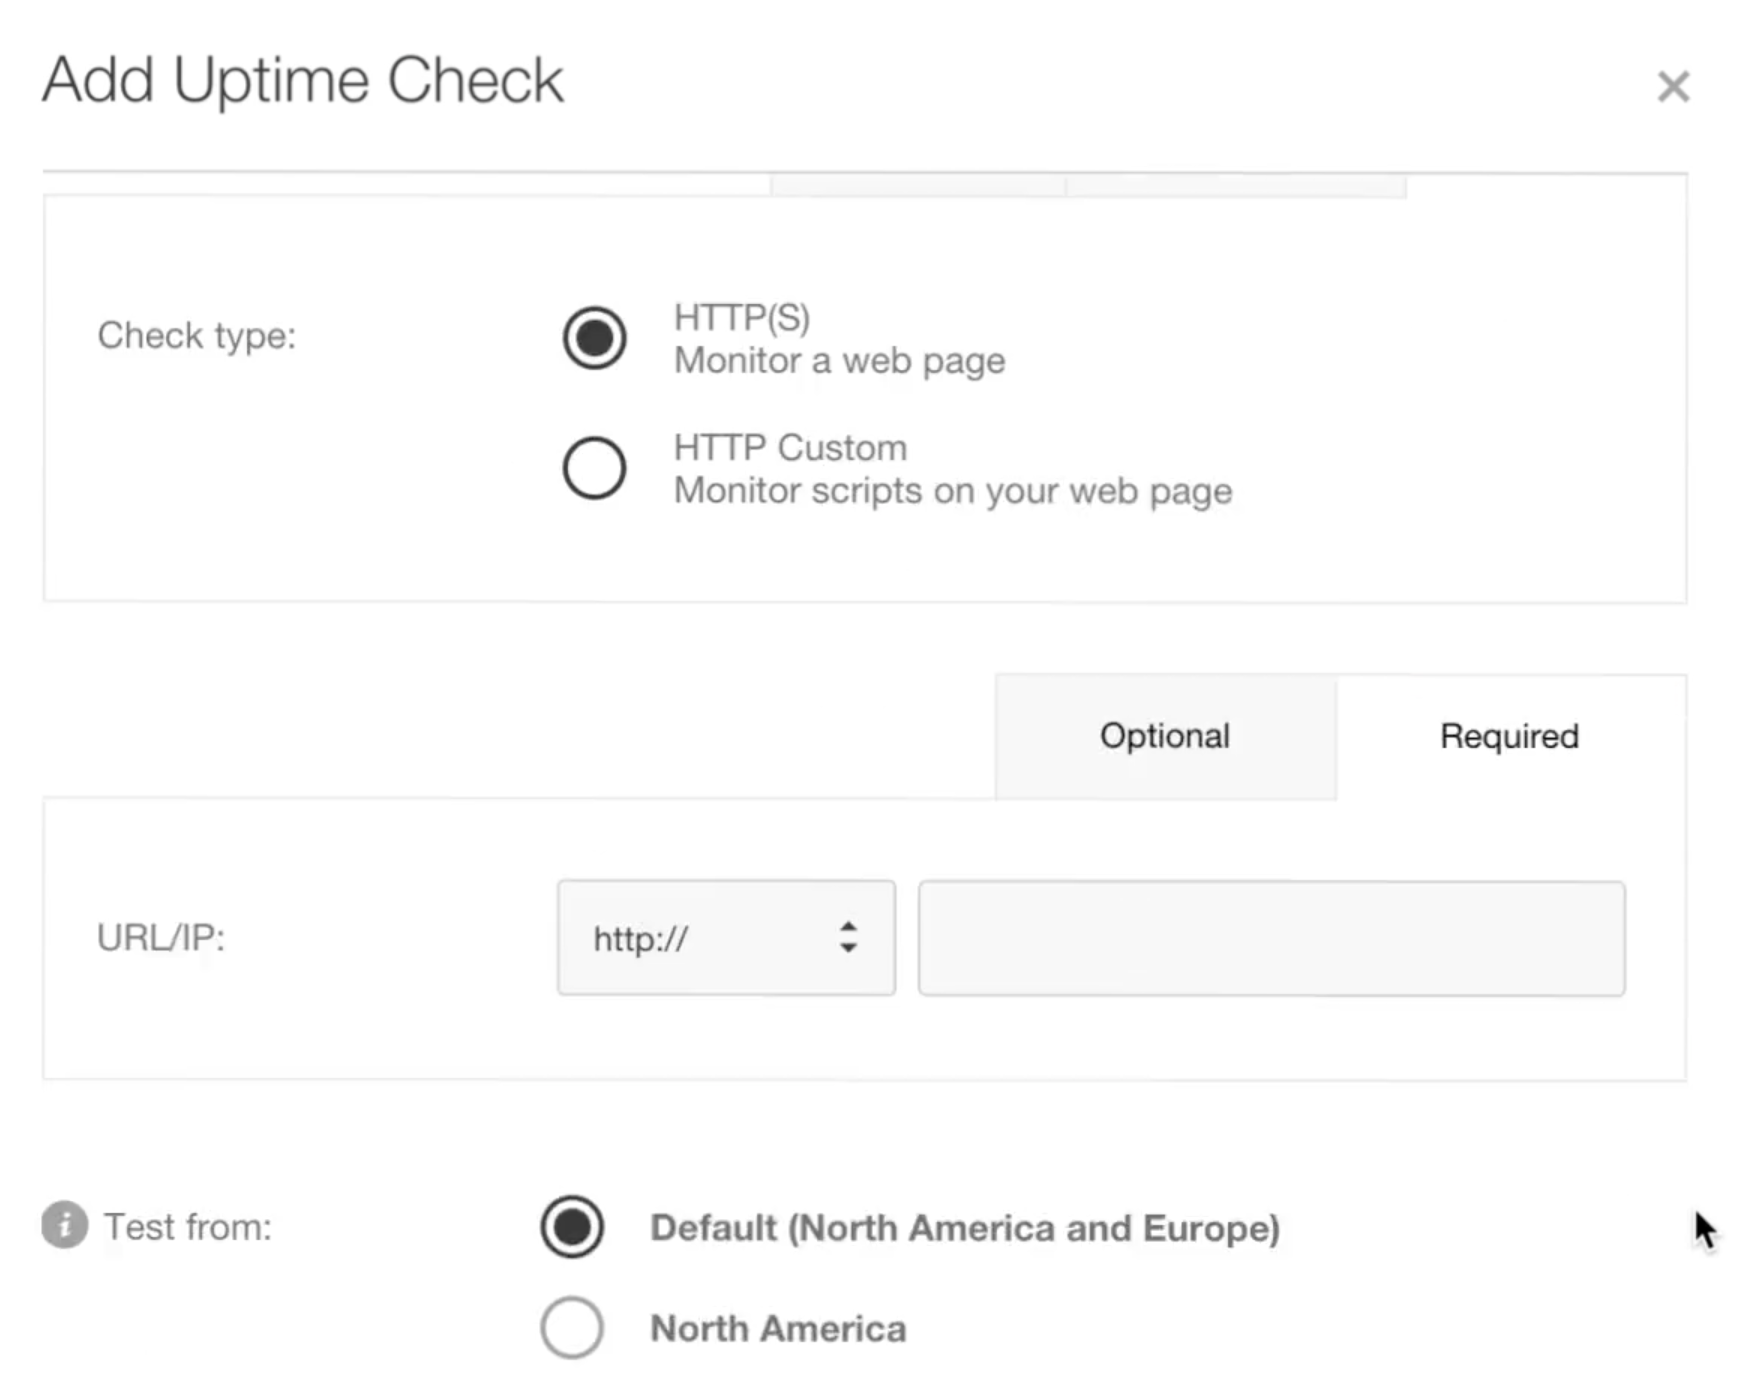 Supports HTTP and custom uptime checks so teams can monitor website uptime from specific locations